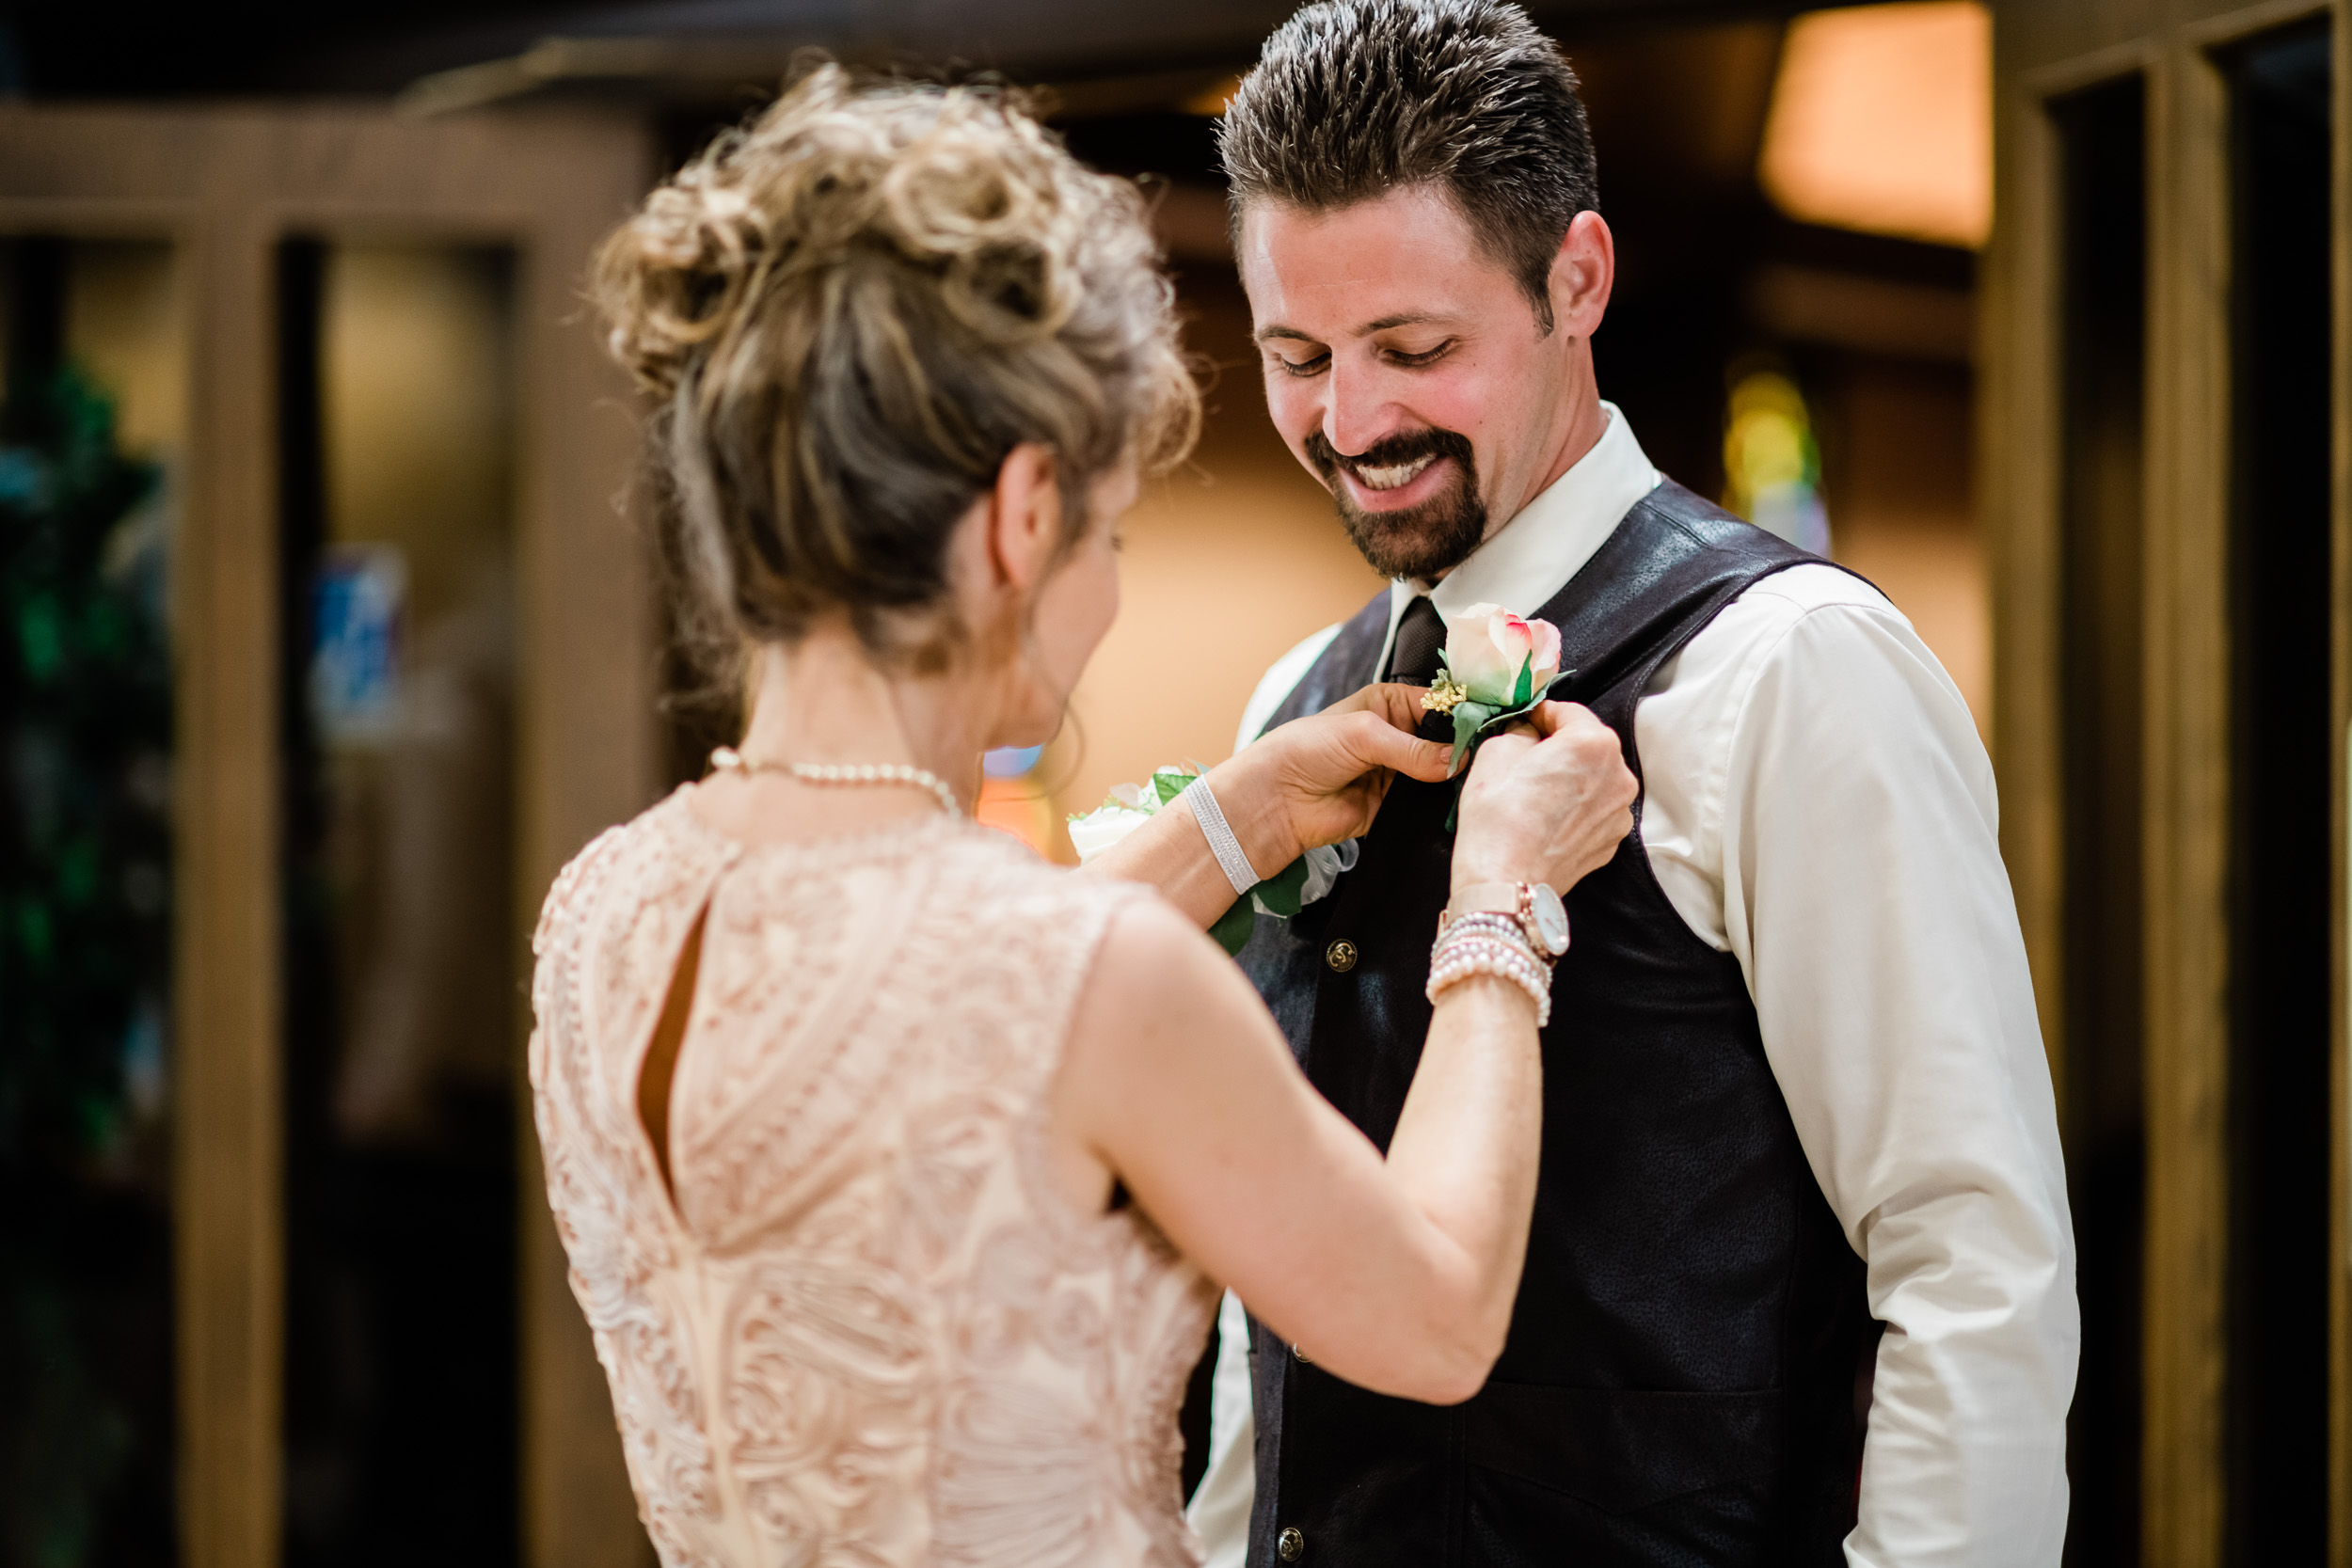 Mother of groom pinning on his boutonnière